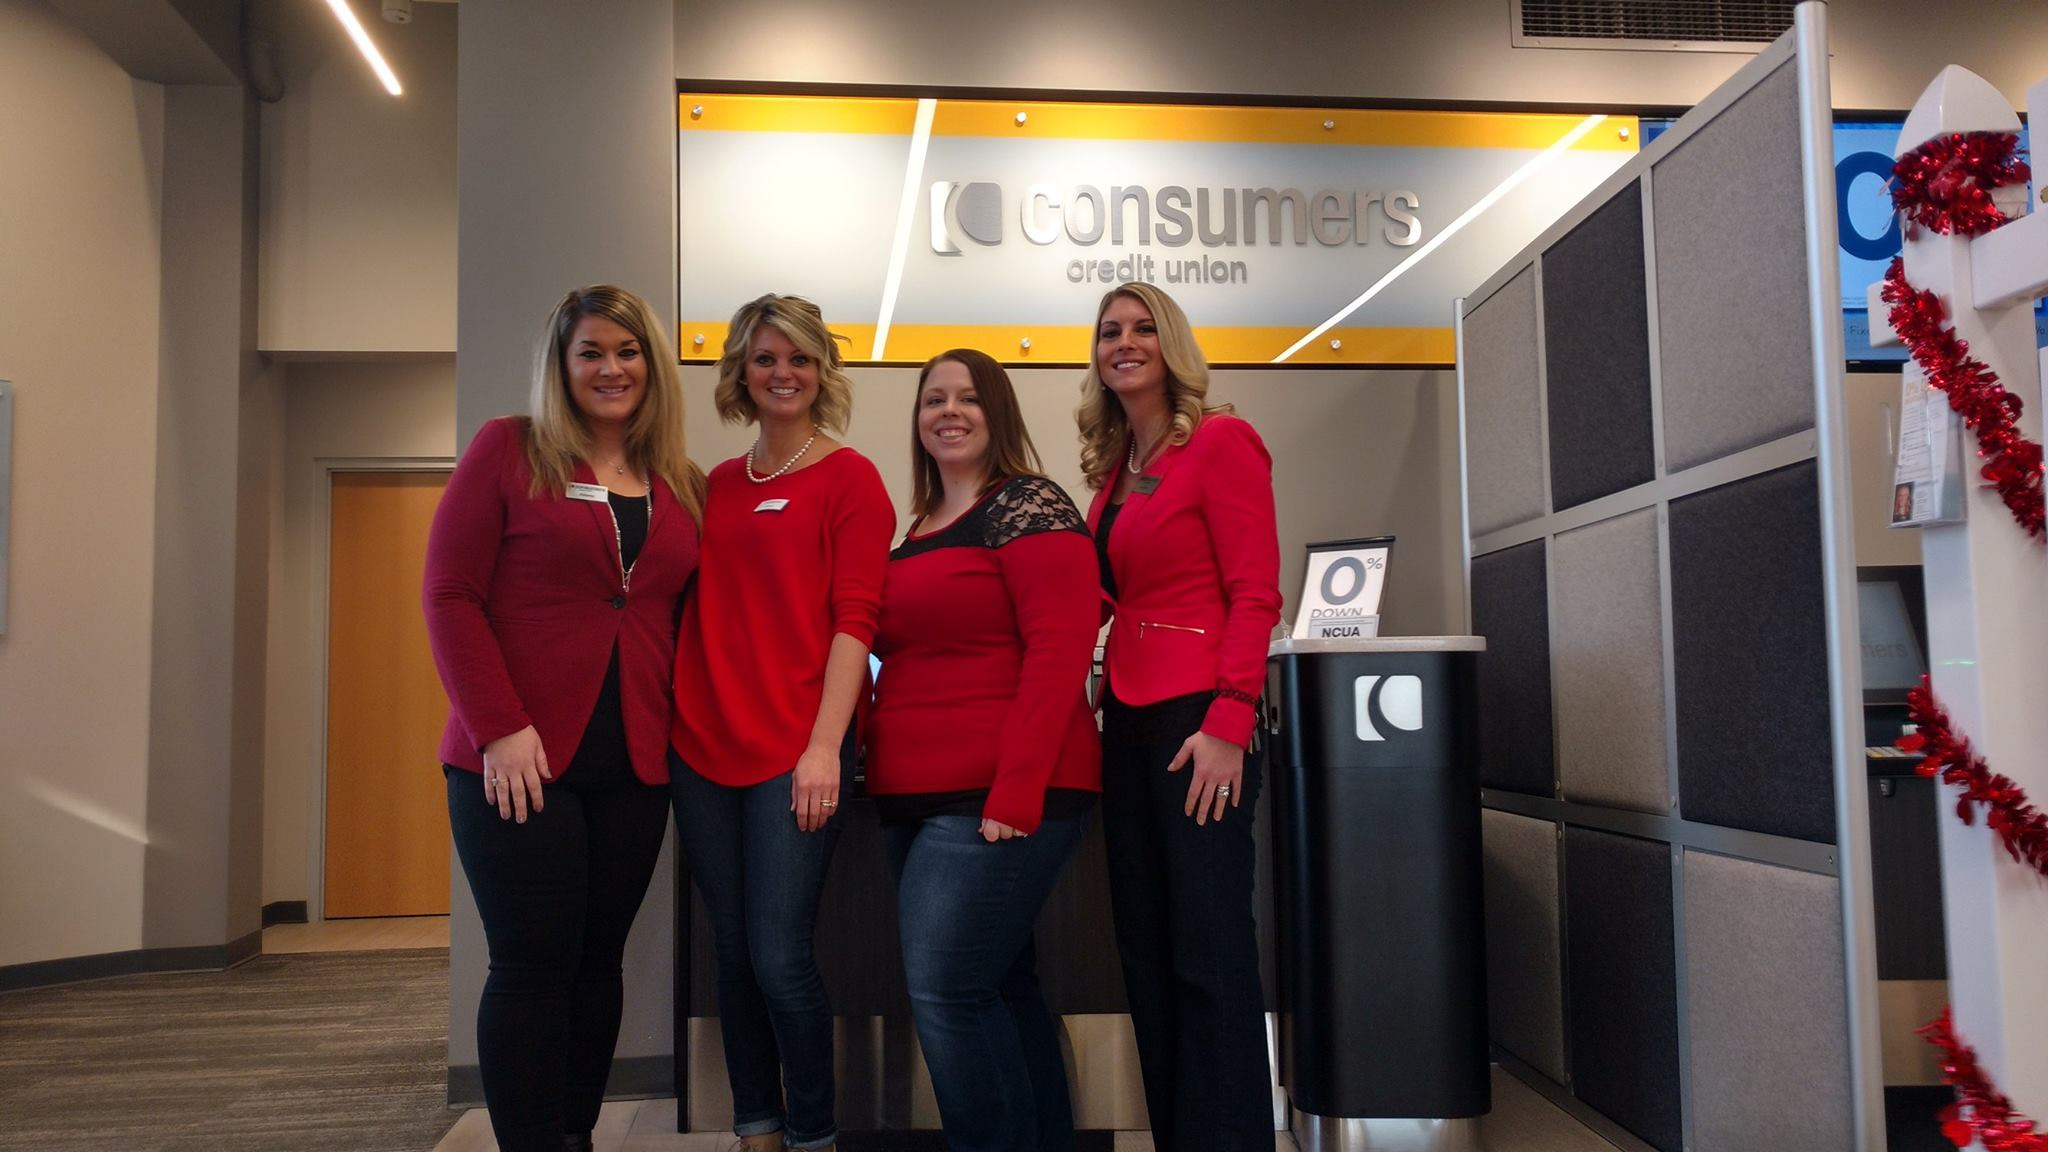 Four women in red smiling in front of an orange Consumers Credit Union sign